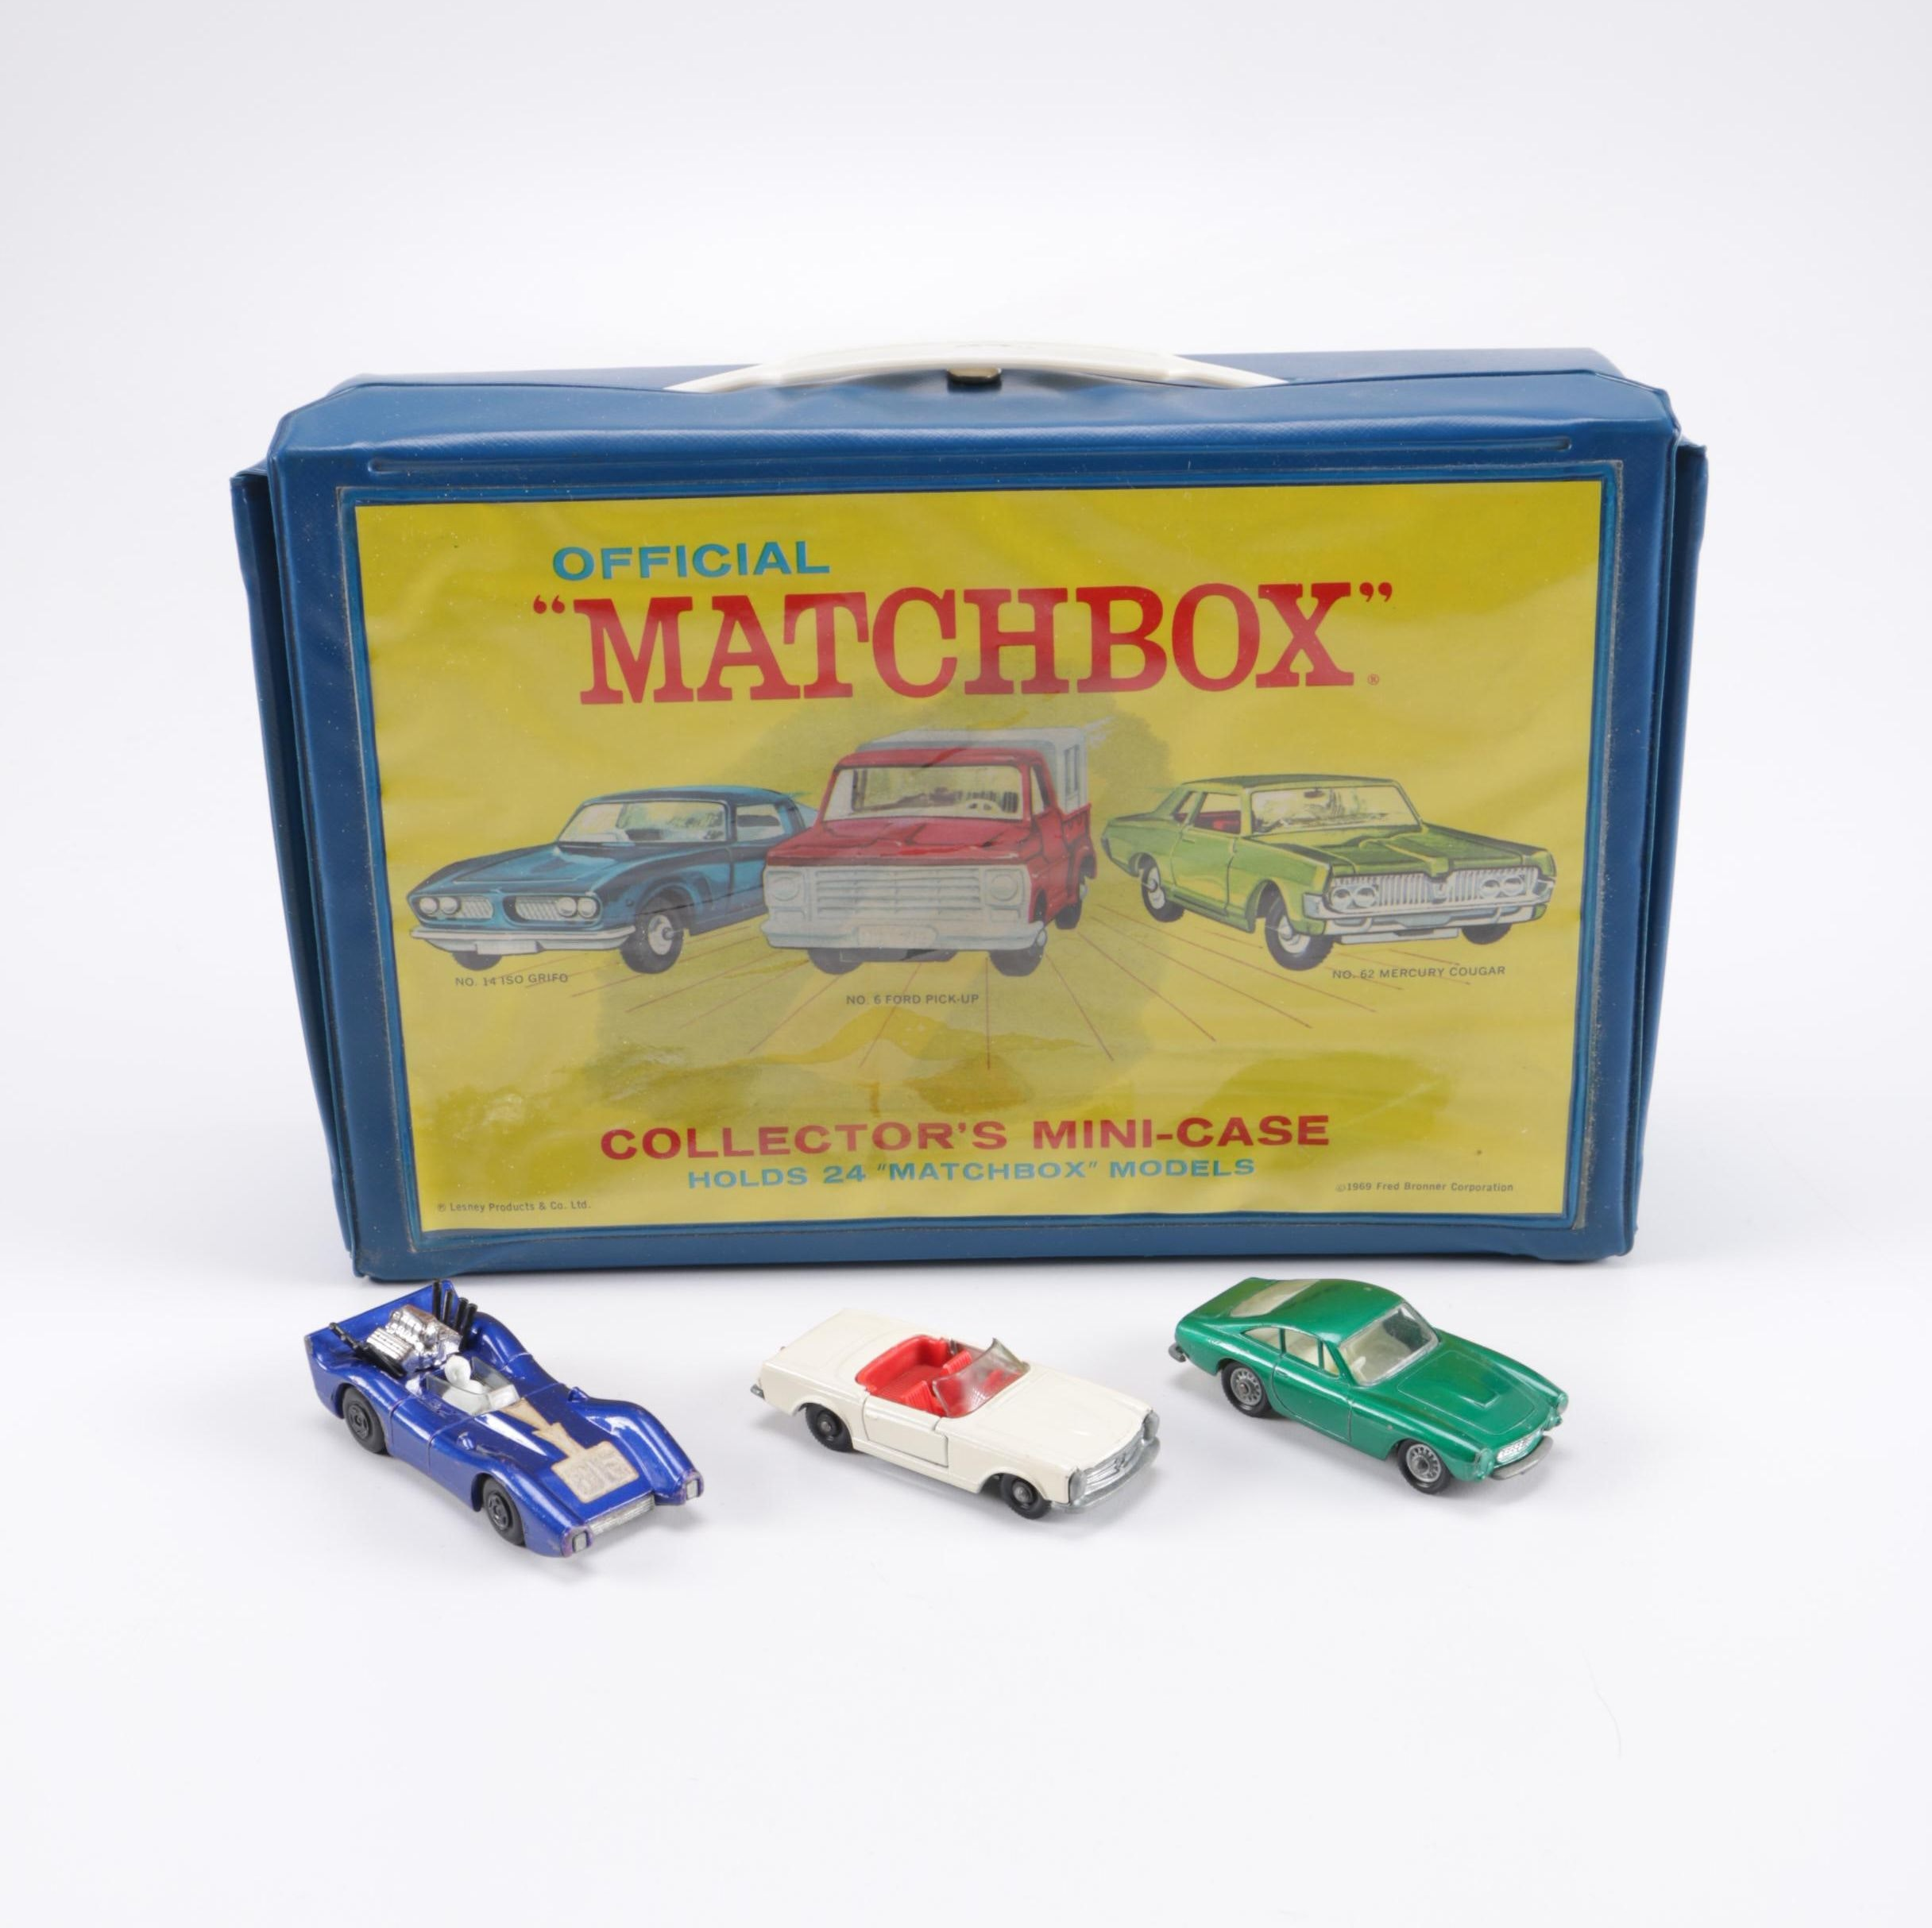 Official Matchbox Collector S Mini Case With Vintage Matchbox Die Cast Cars Ebth